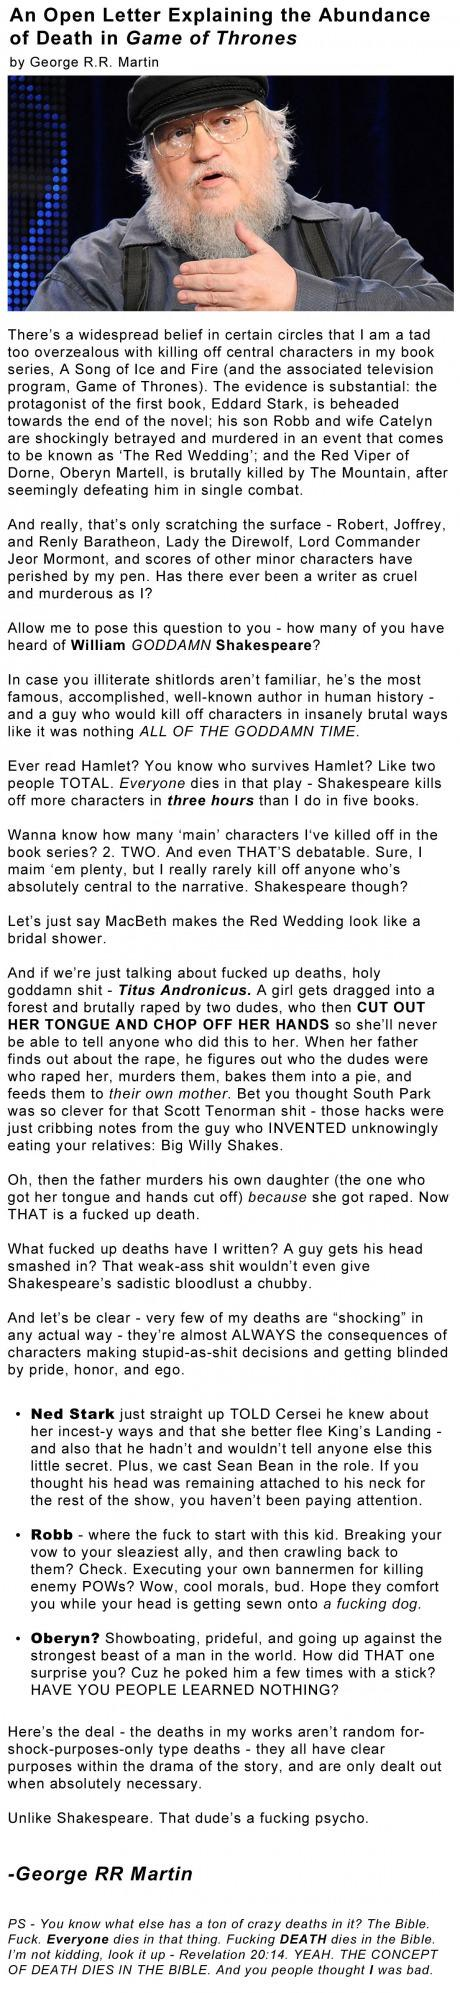 George R.R. Martin's Open Letter About the Deaths in Game of Thrones | DailyFailCentral